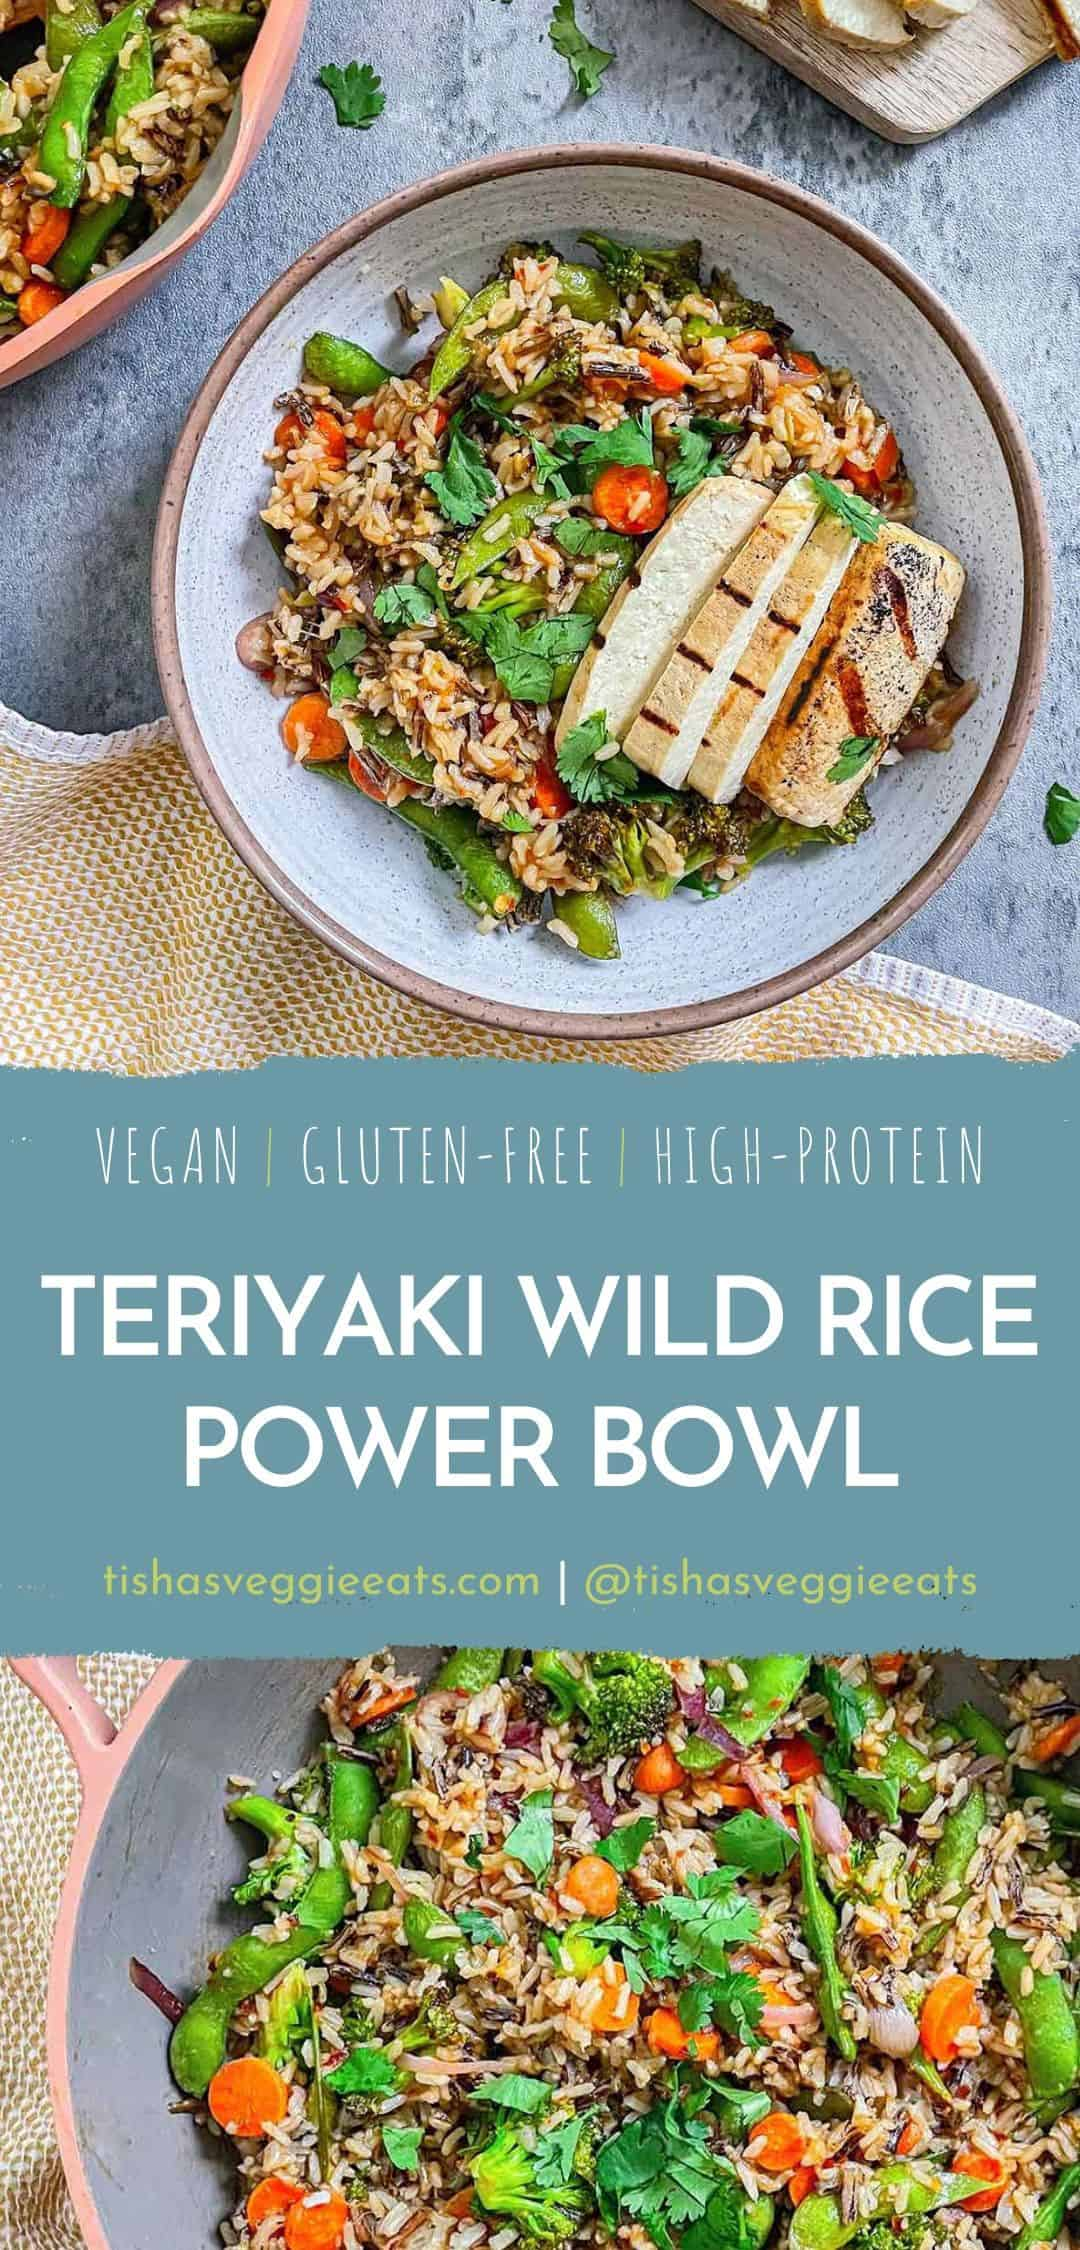 teriyaki forbidden wild rice bowl in large our place pan with grilled sliced tofu in the background on marble cutting board pinterest image